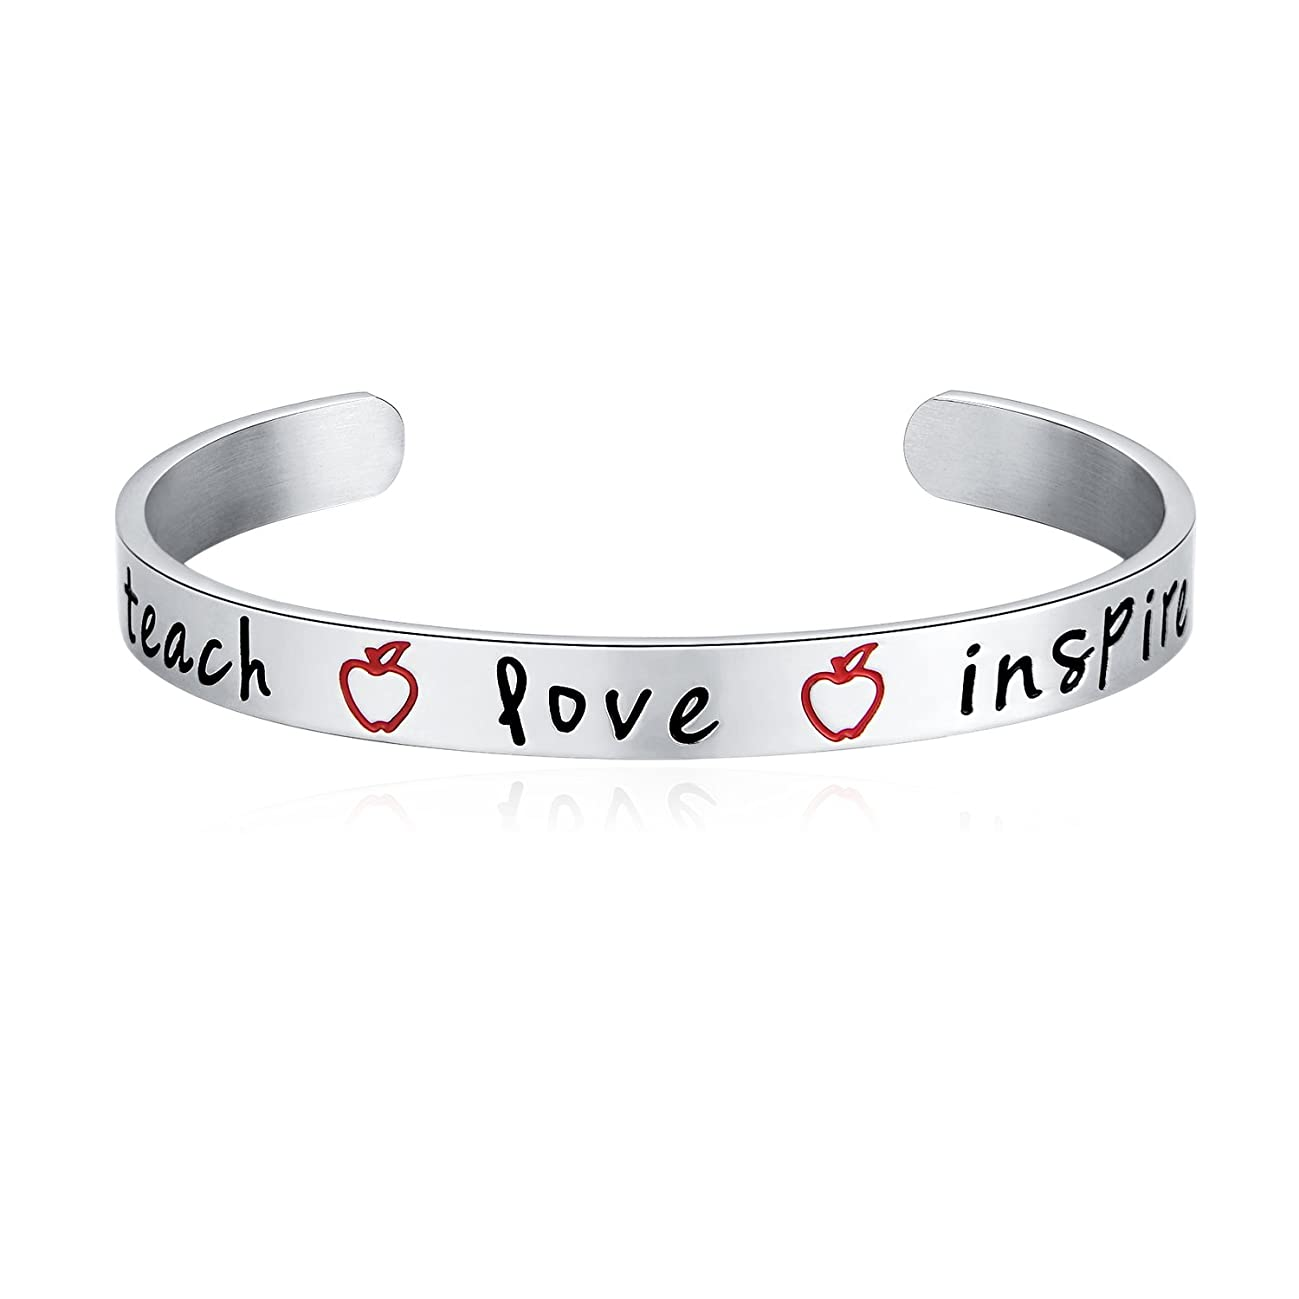 Teacher Appreciation Gift - Stainless Steel Teach Love Inspire Cuff Bangle Bracelet for Women, Jewelry for Teachers, Birthday Gifts for Teachers, Thank You for Helping Me Grow Gift